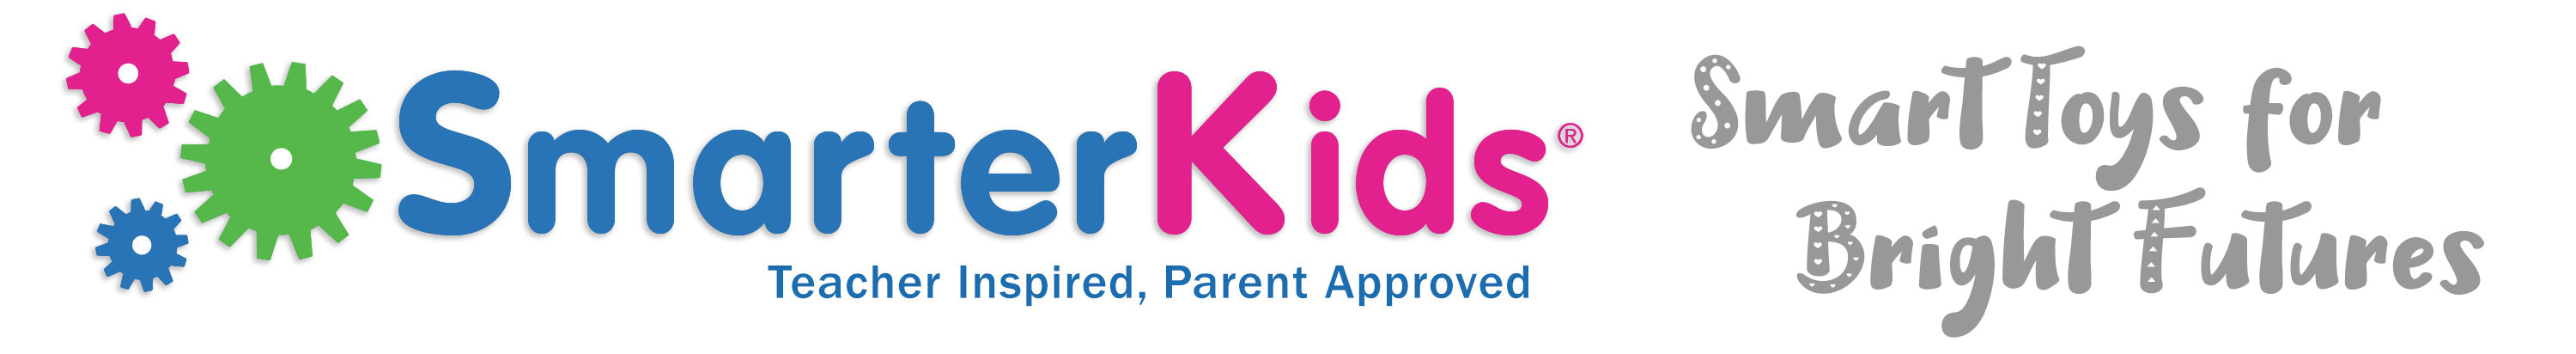 Smarter Kids - Teacher Inspired, Parent Approved